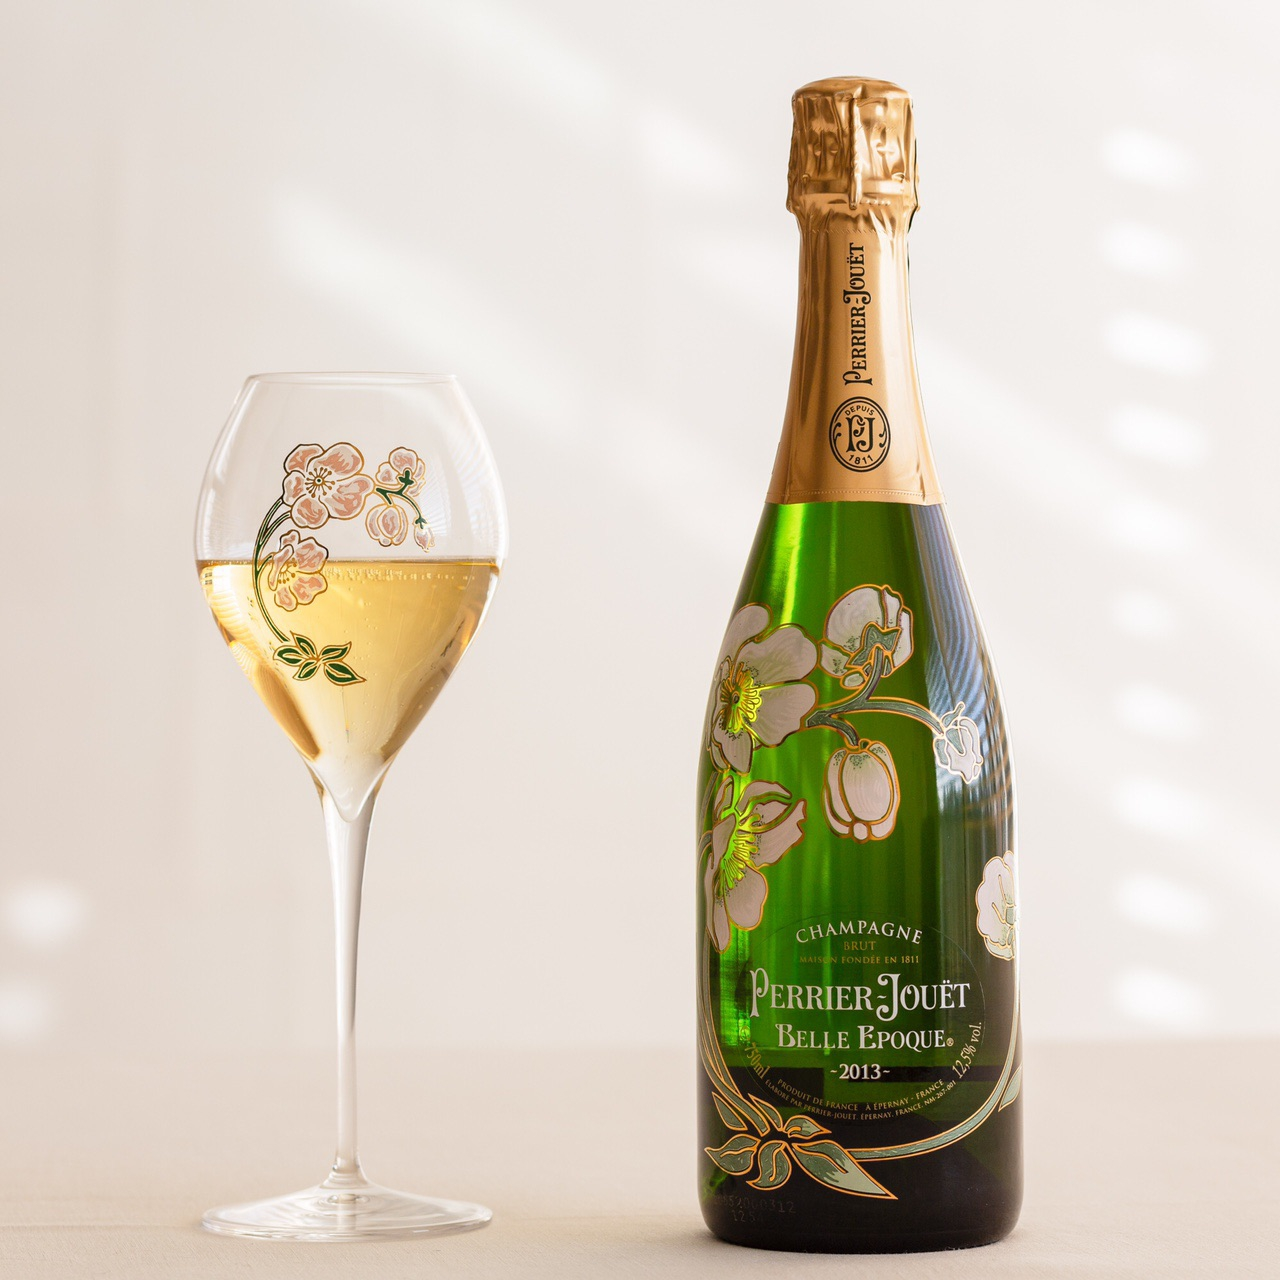 A delicious story of Perrier-Jouët.